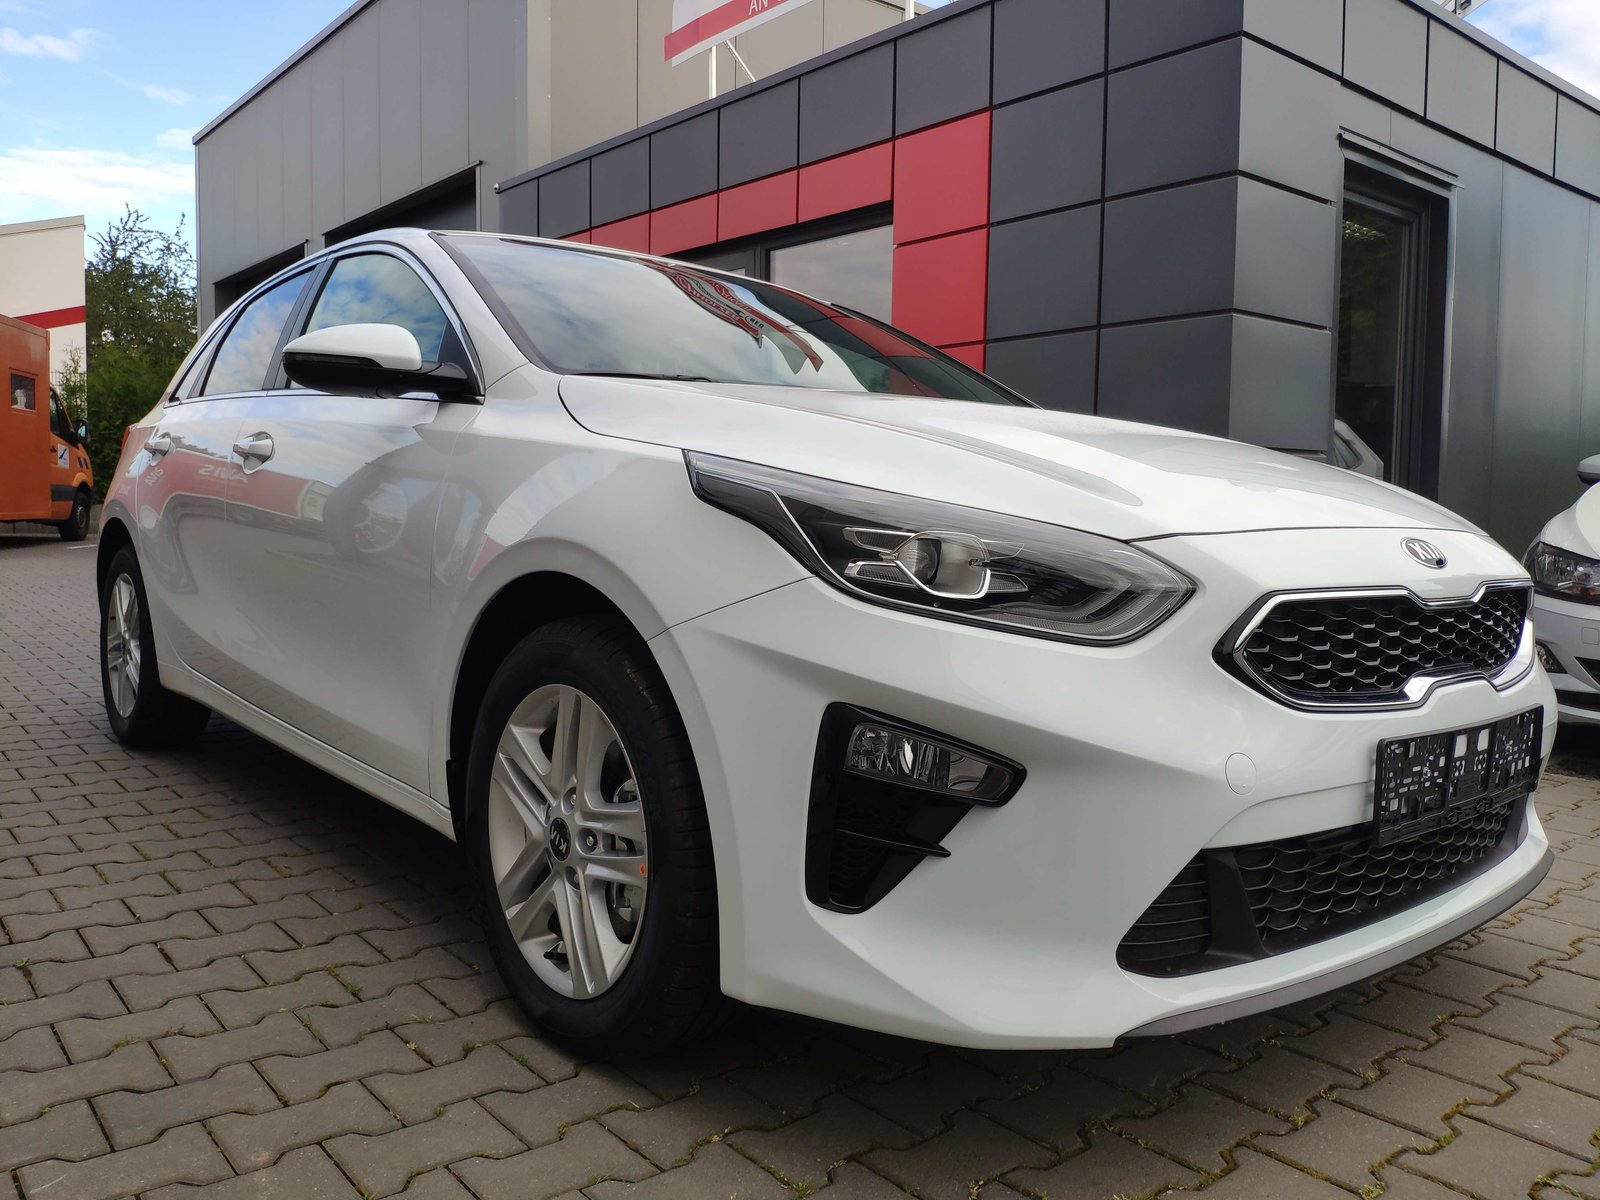 KIA CEED Cee'd Limo Kamera*Sitzheizung*App-Connect! Autosoft BV, Enschede